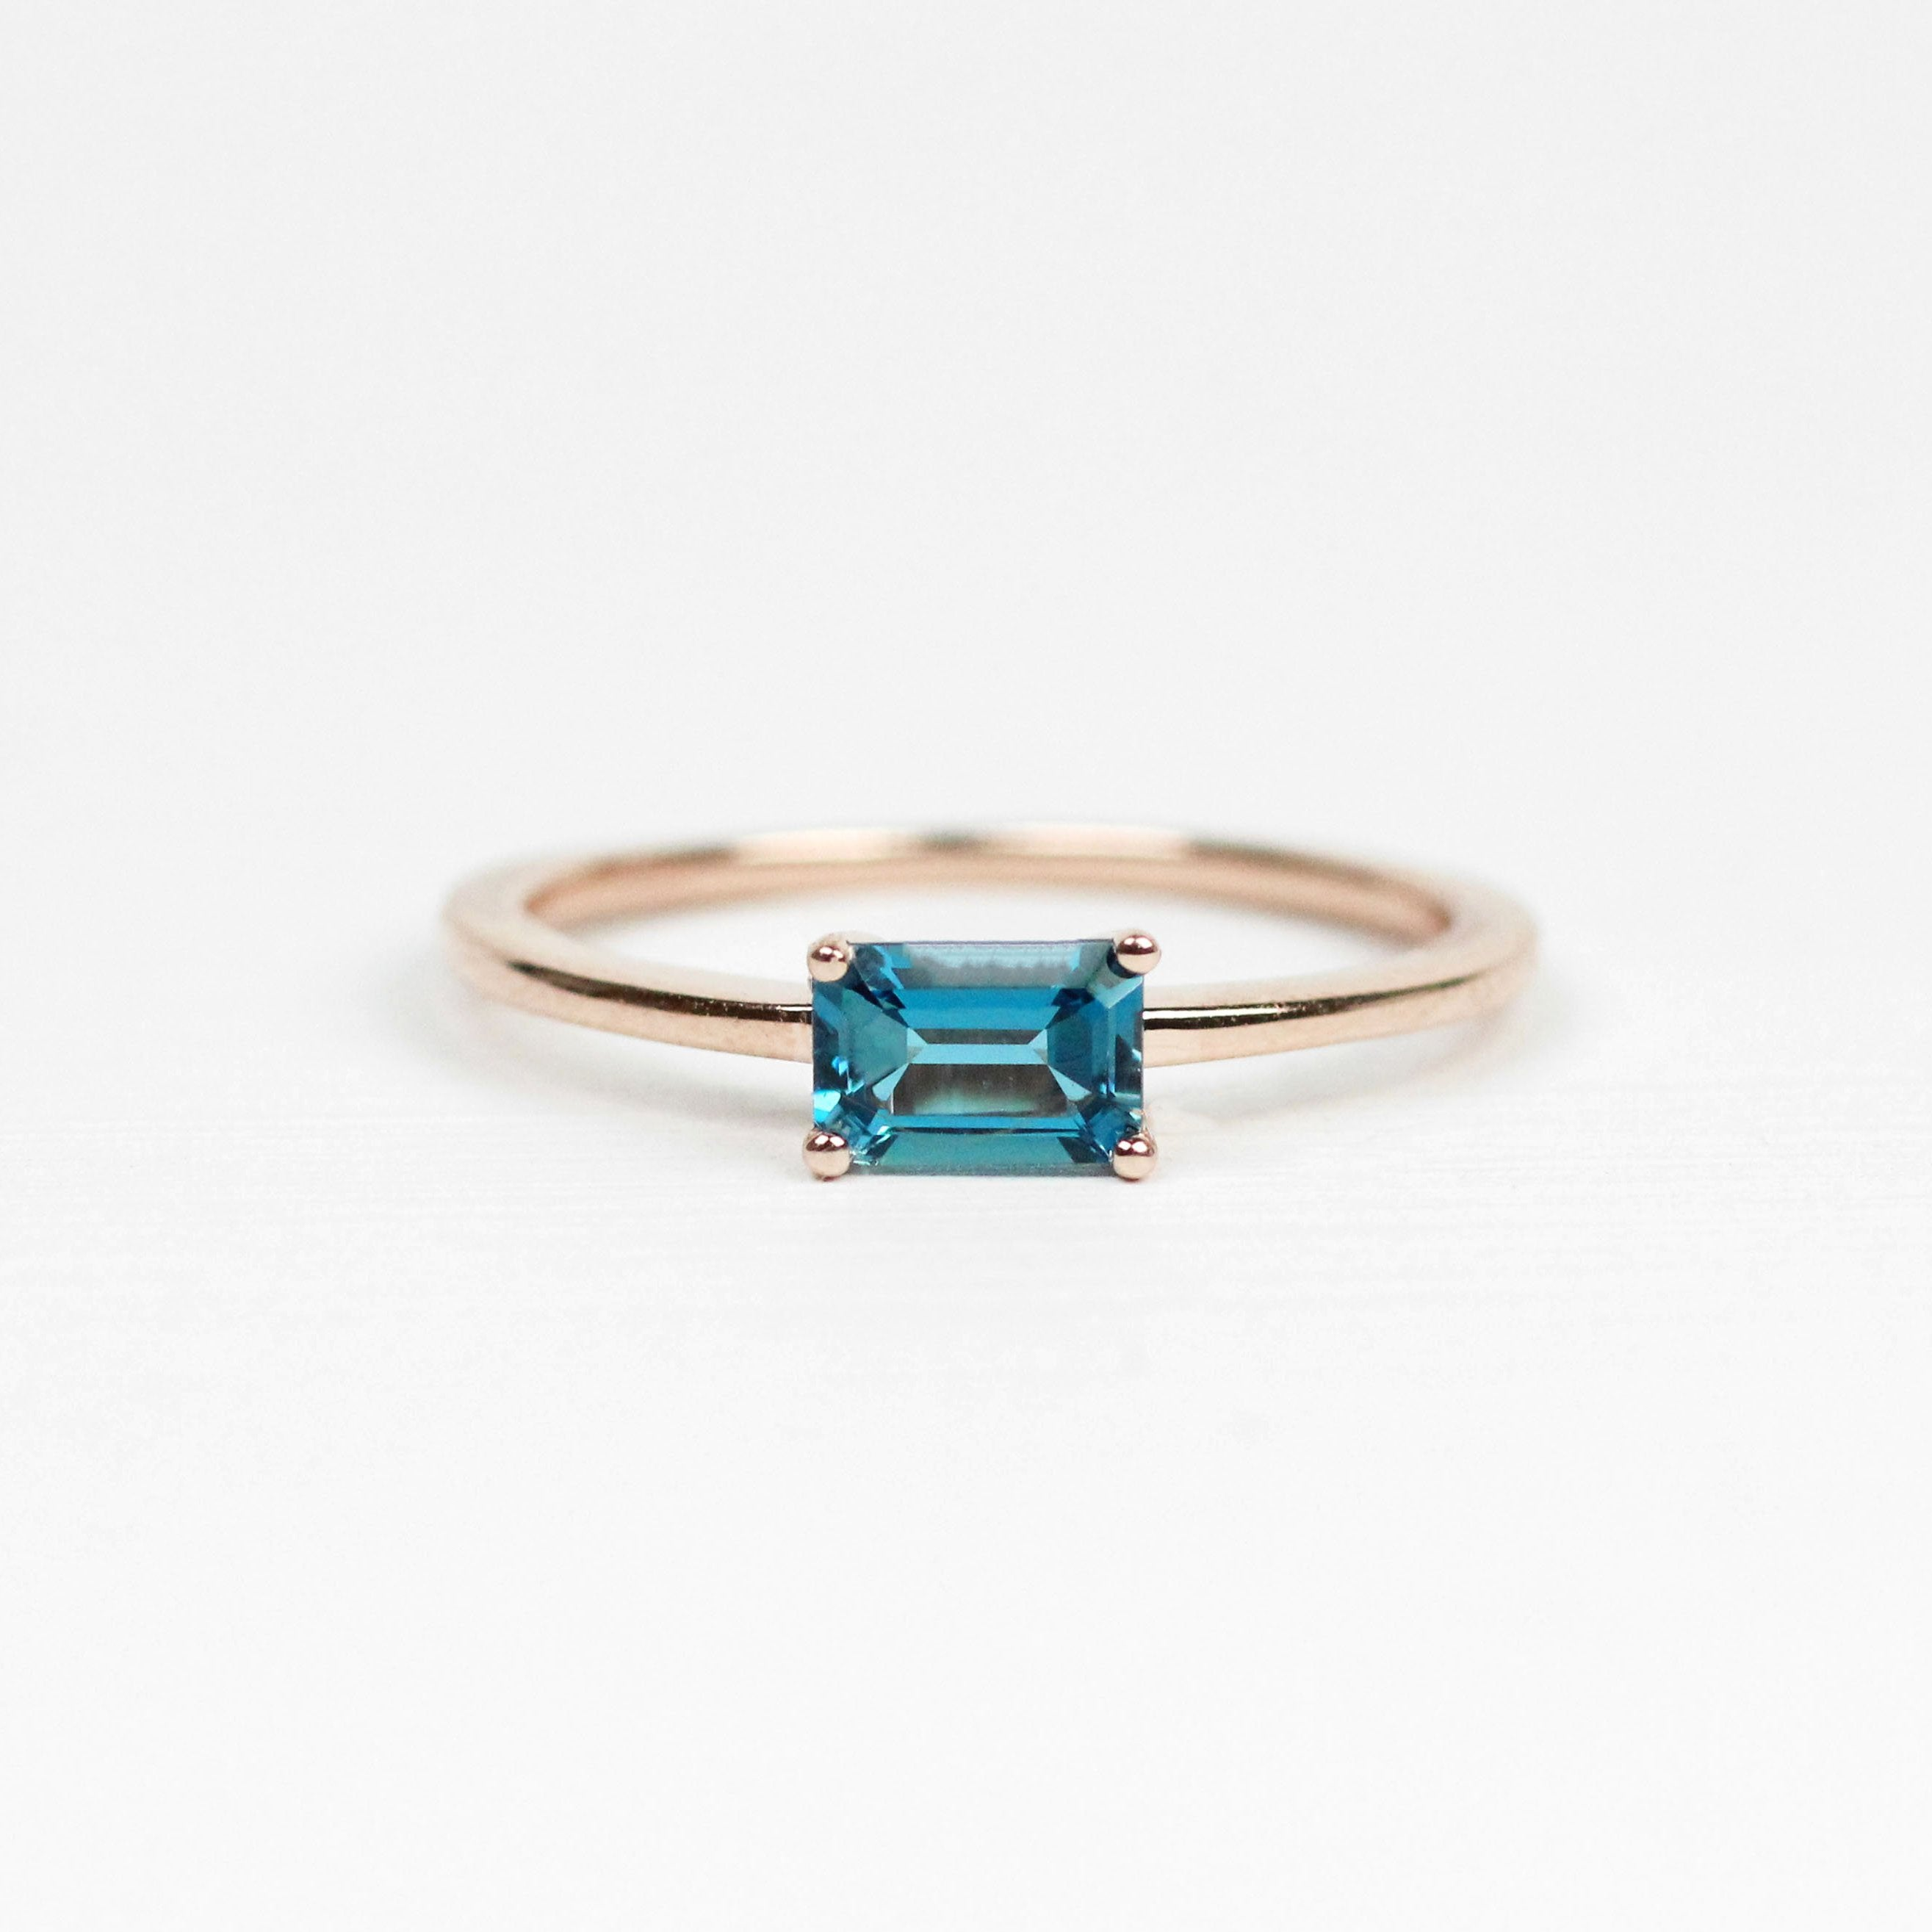 Ruthie Ring with London Blue Topaz - Your choice of metal - Custom - Midwinter Co. Alternative Bridal Rings and Modern Fine Jewelry